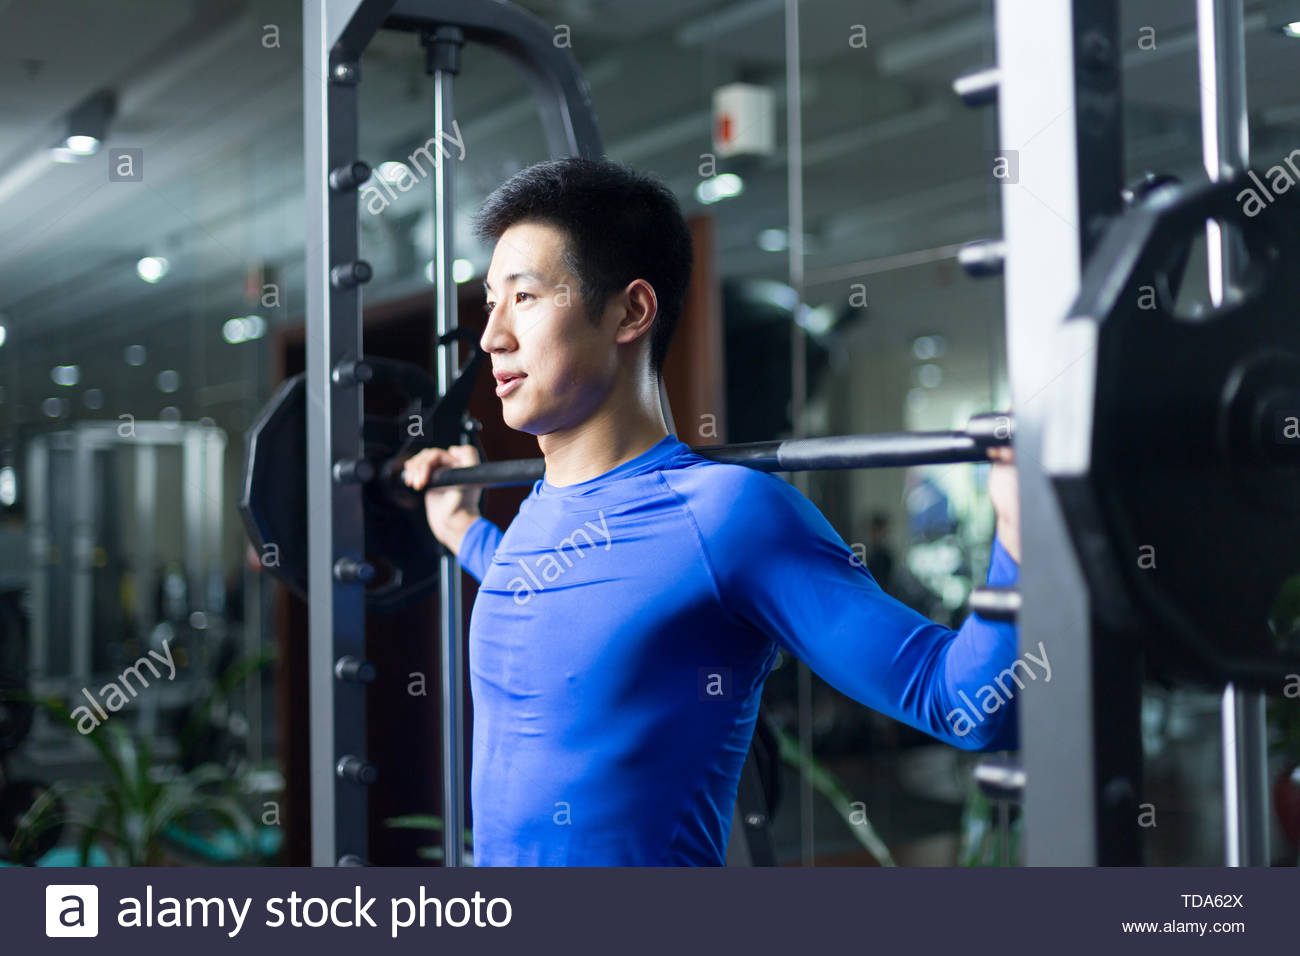 young asian man working out in modern gym - Stock Image